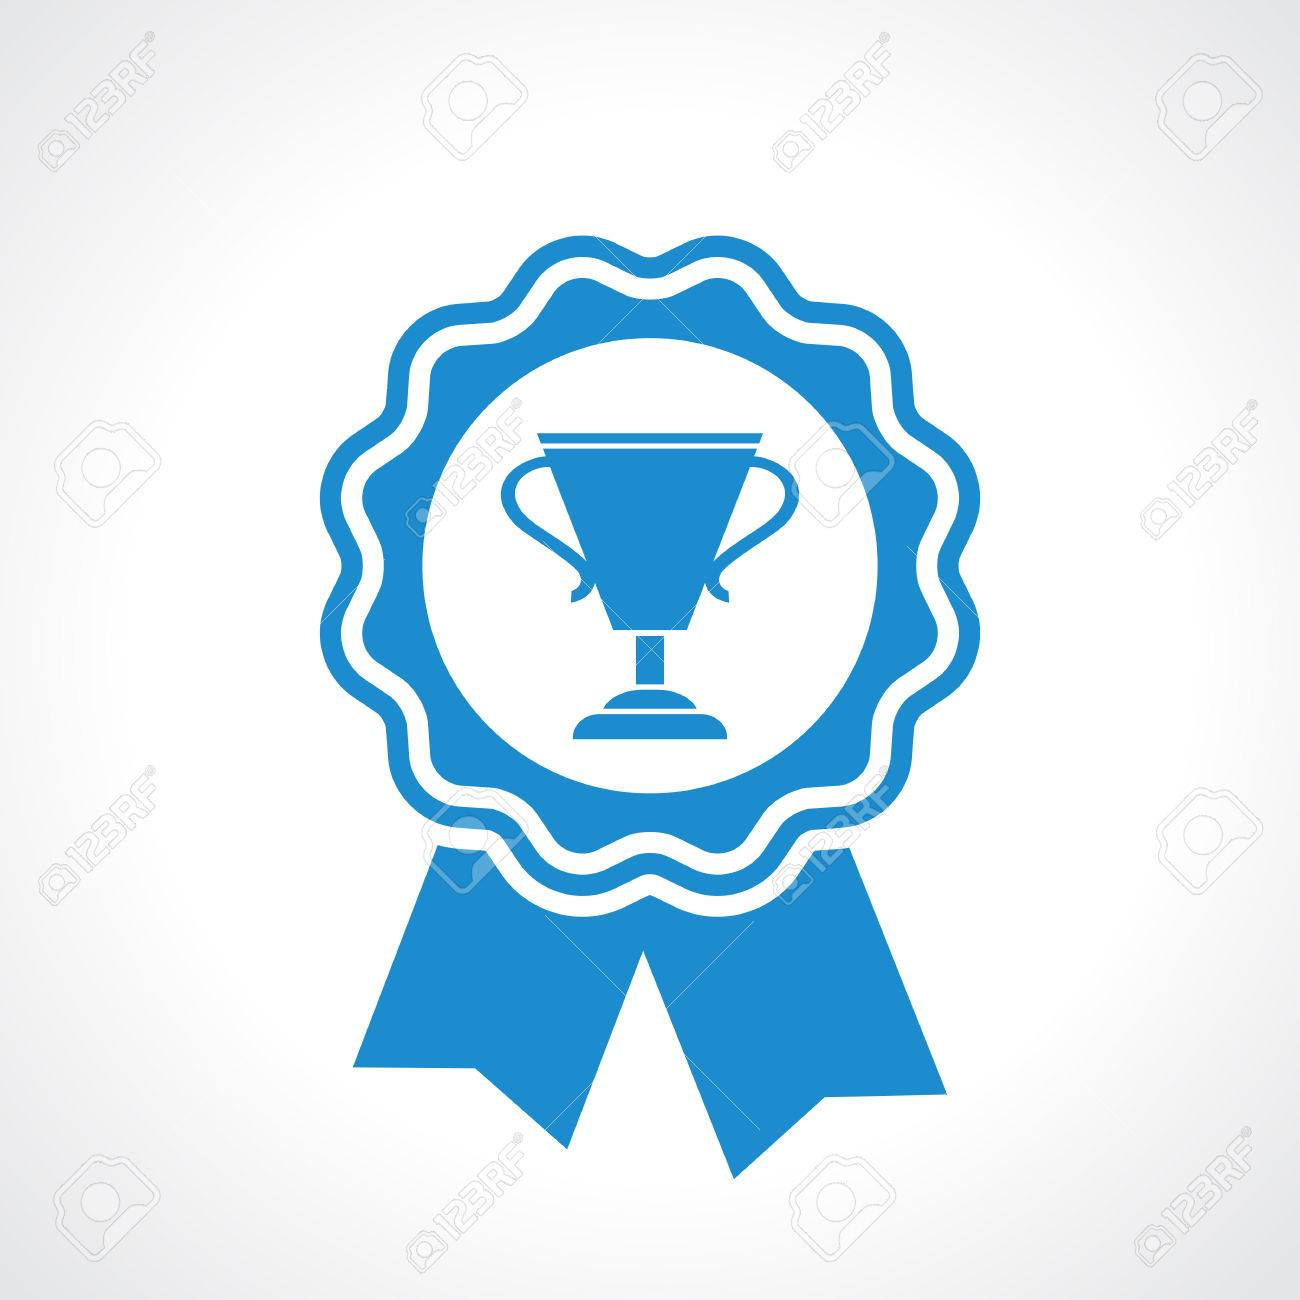 Winner Certificate Seal Royalty Free Cliparts Vectors And Stock